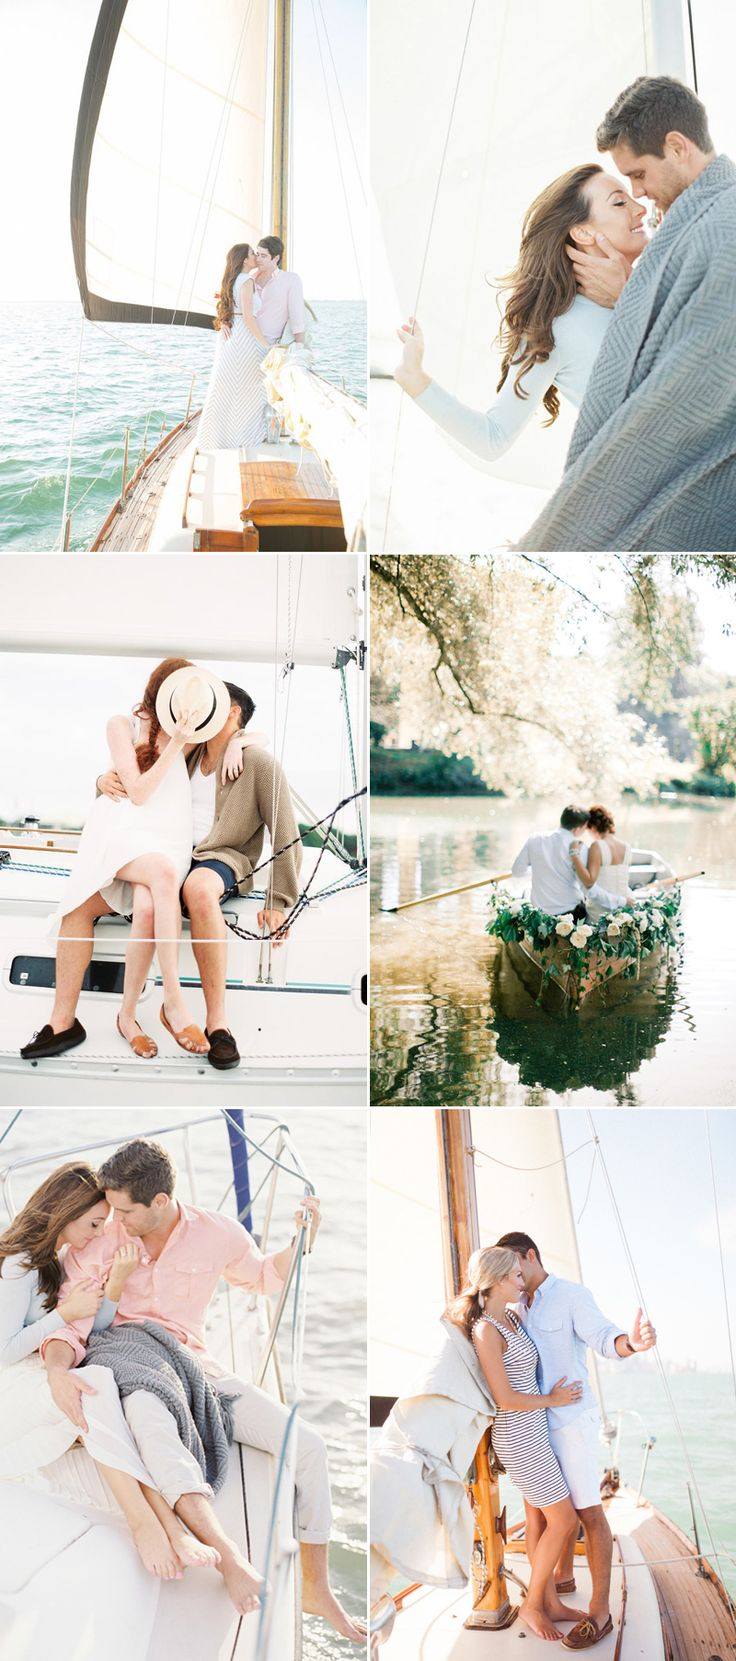 "We hear the term ""love boat"" all the time, but never imagined how romantic it is to actually have your engagement photos taken on a boat!  There is something so peaceful and magical about today's collection of engagement photos. These couples are totally in their own little worlds filled with love and joy, and perhaps …"